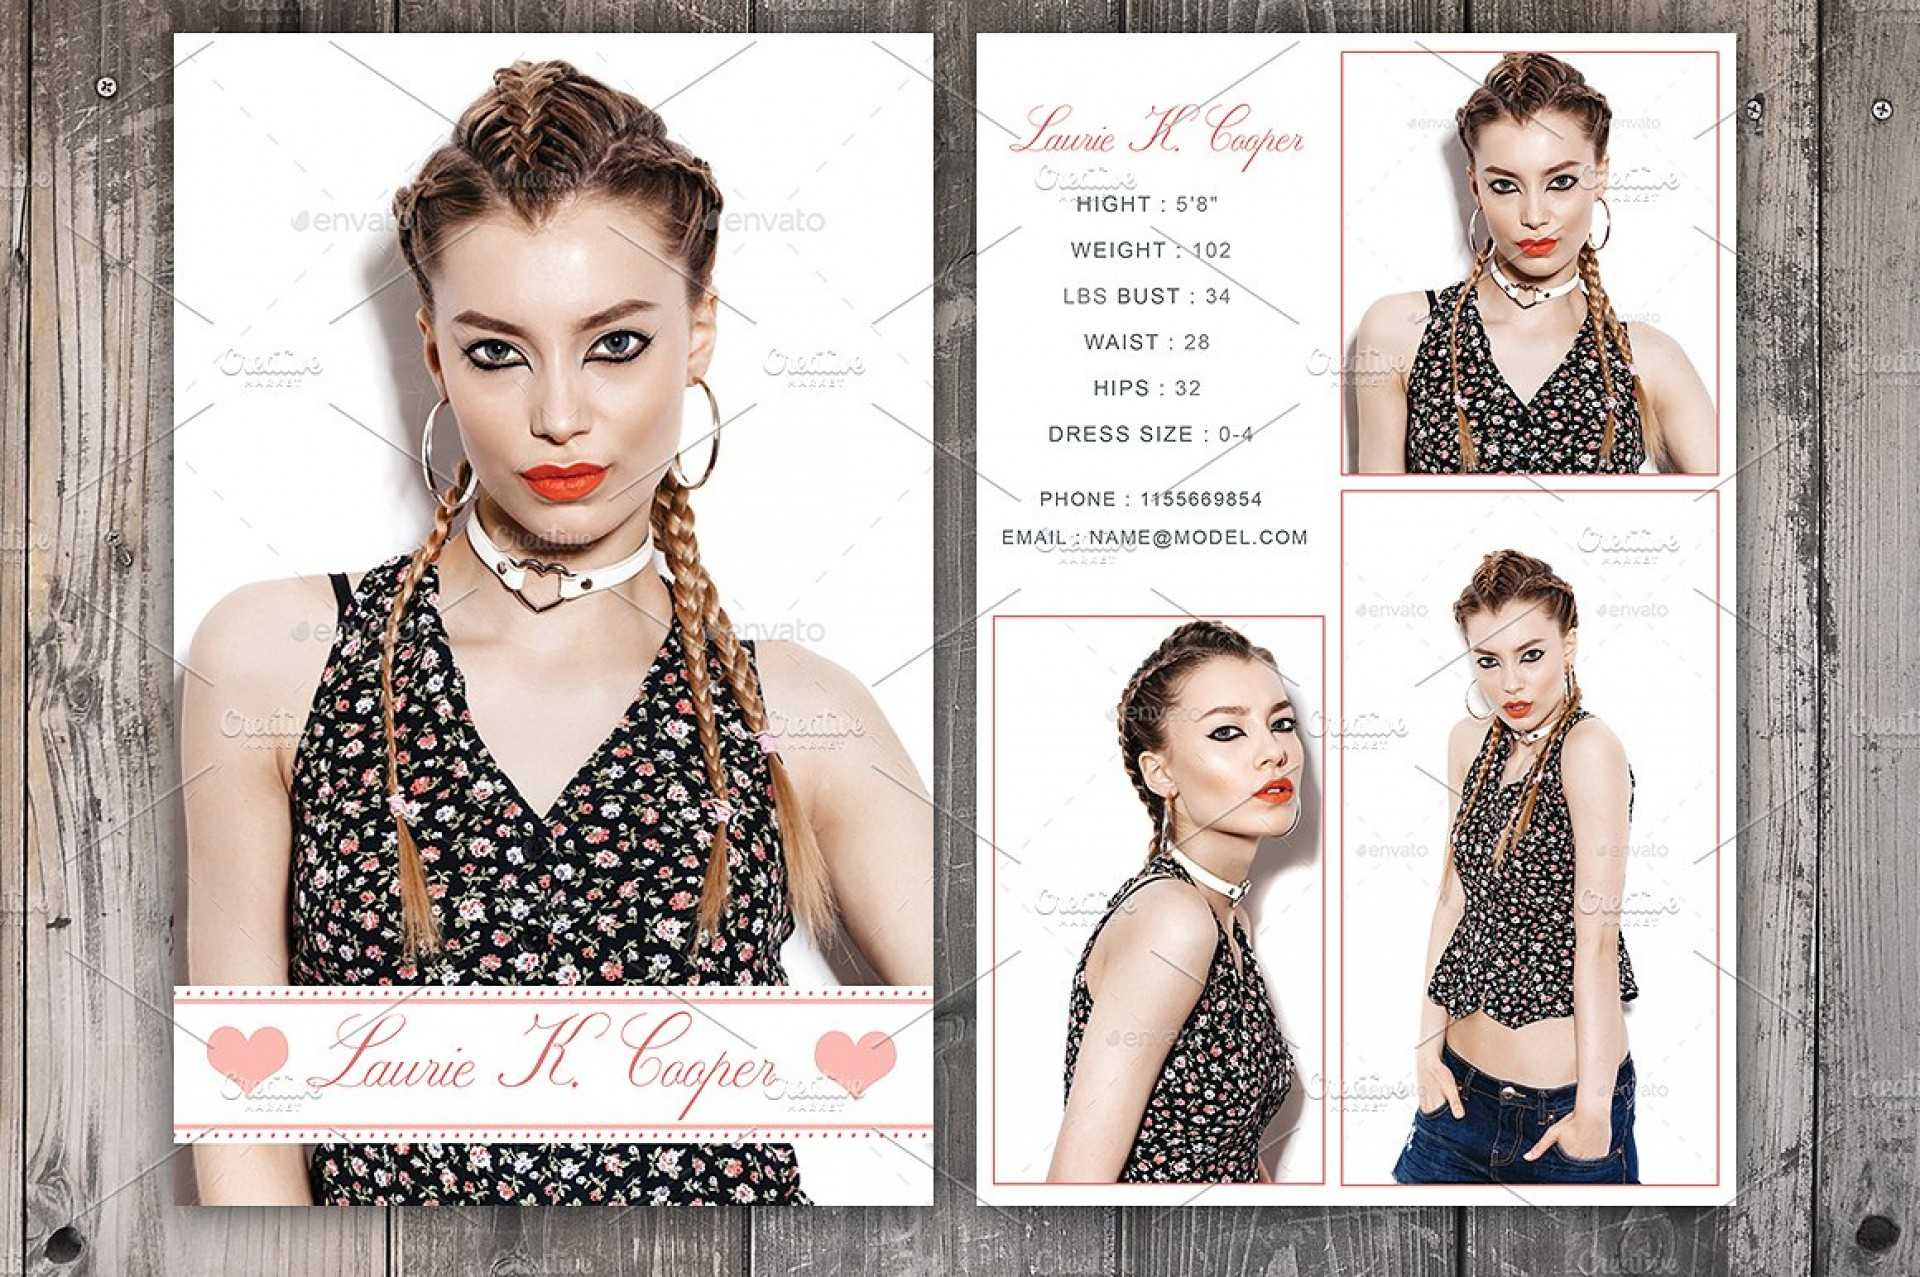 Free Model Comp Card Templates - C Punkt Throughout Comp Card Template Download